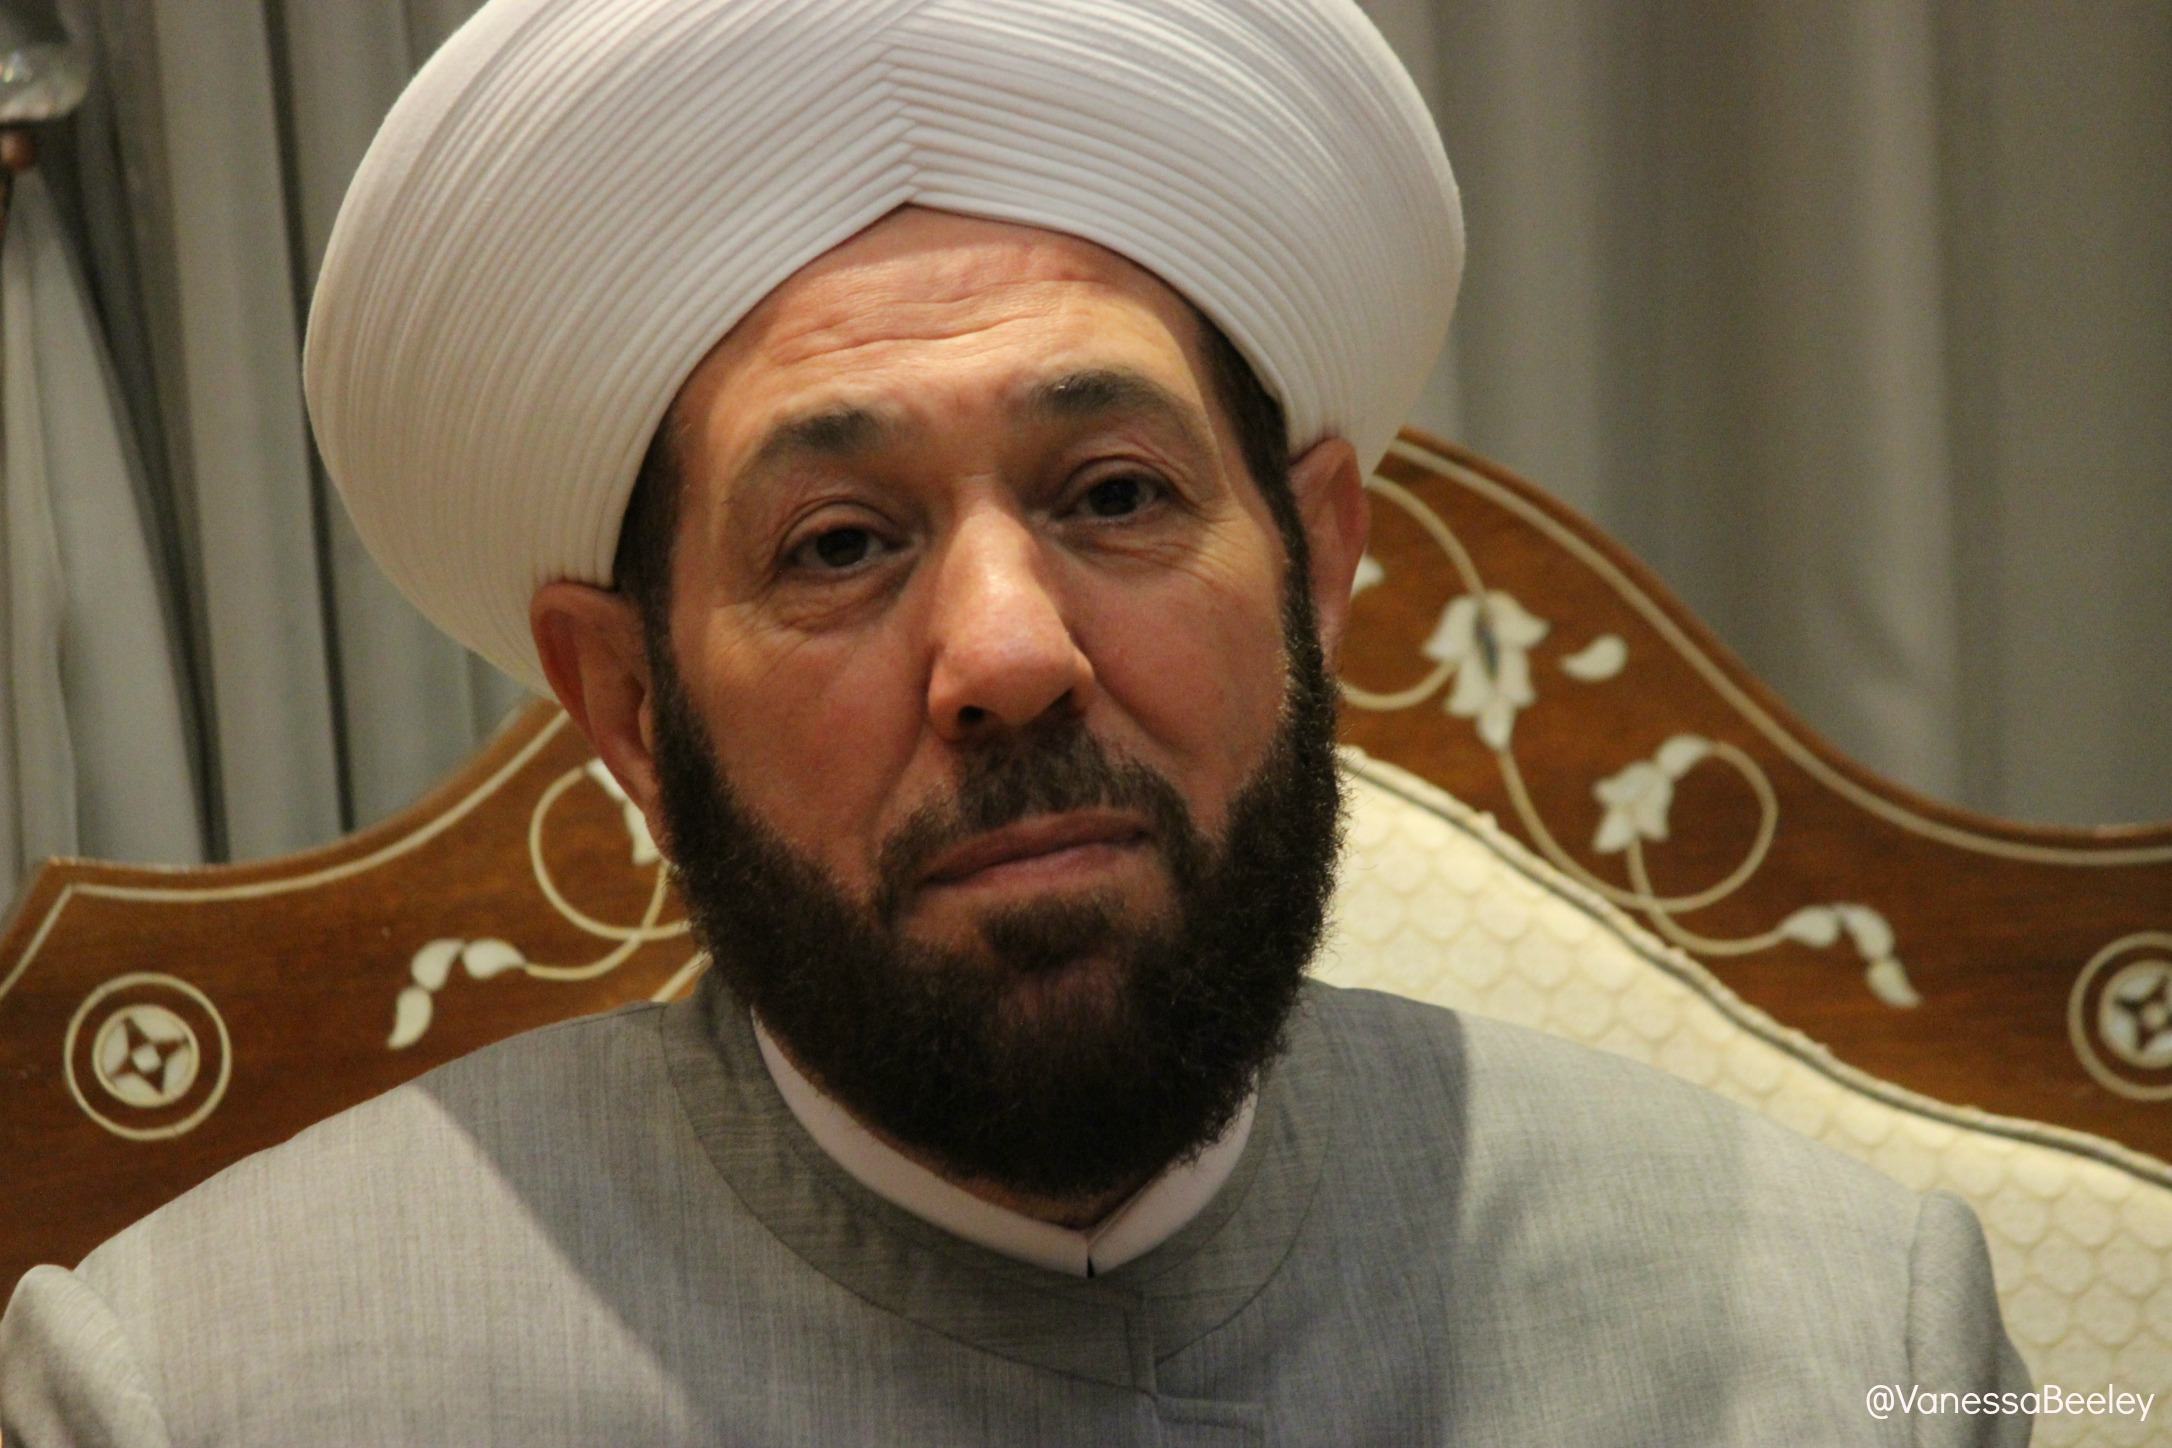 Grand Mufti Ahmad Badreddin Hassoun. (Photo by Vanessa Beeley)